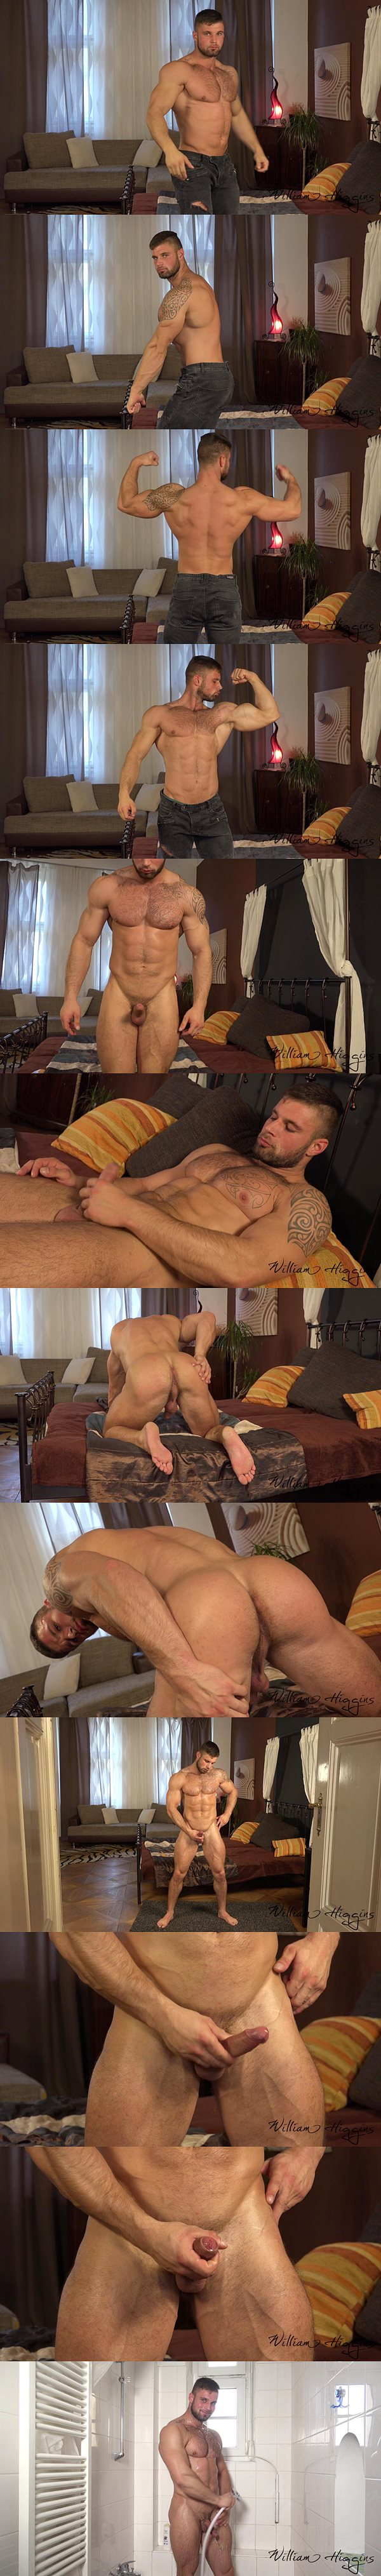 Hairy straight muscle hunk Leo Lombar jerks off at Williamhiggins